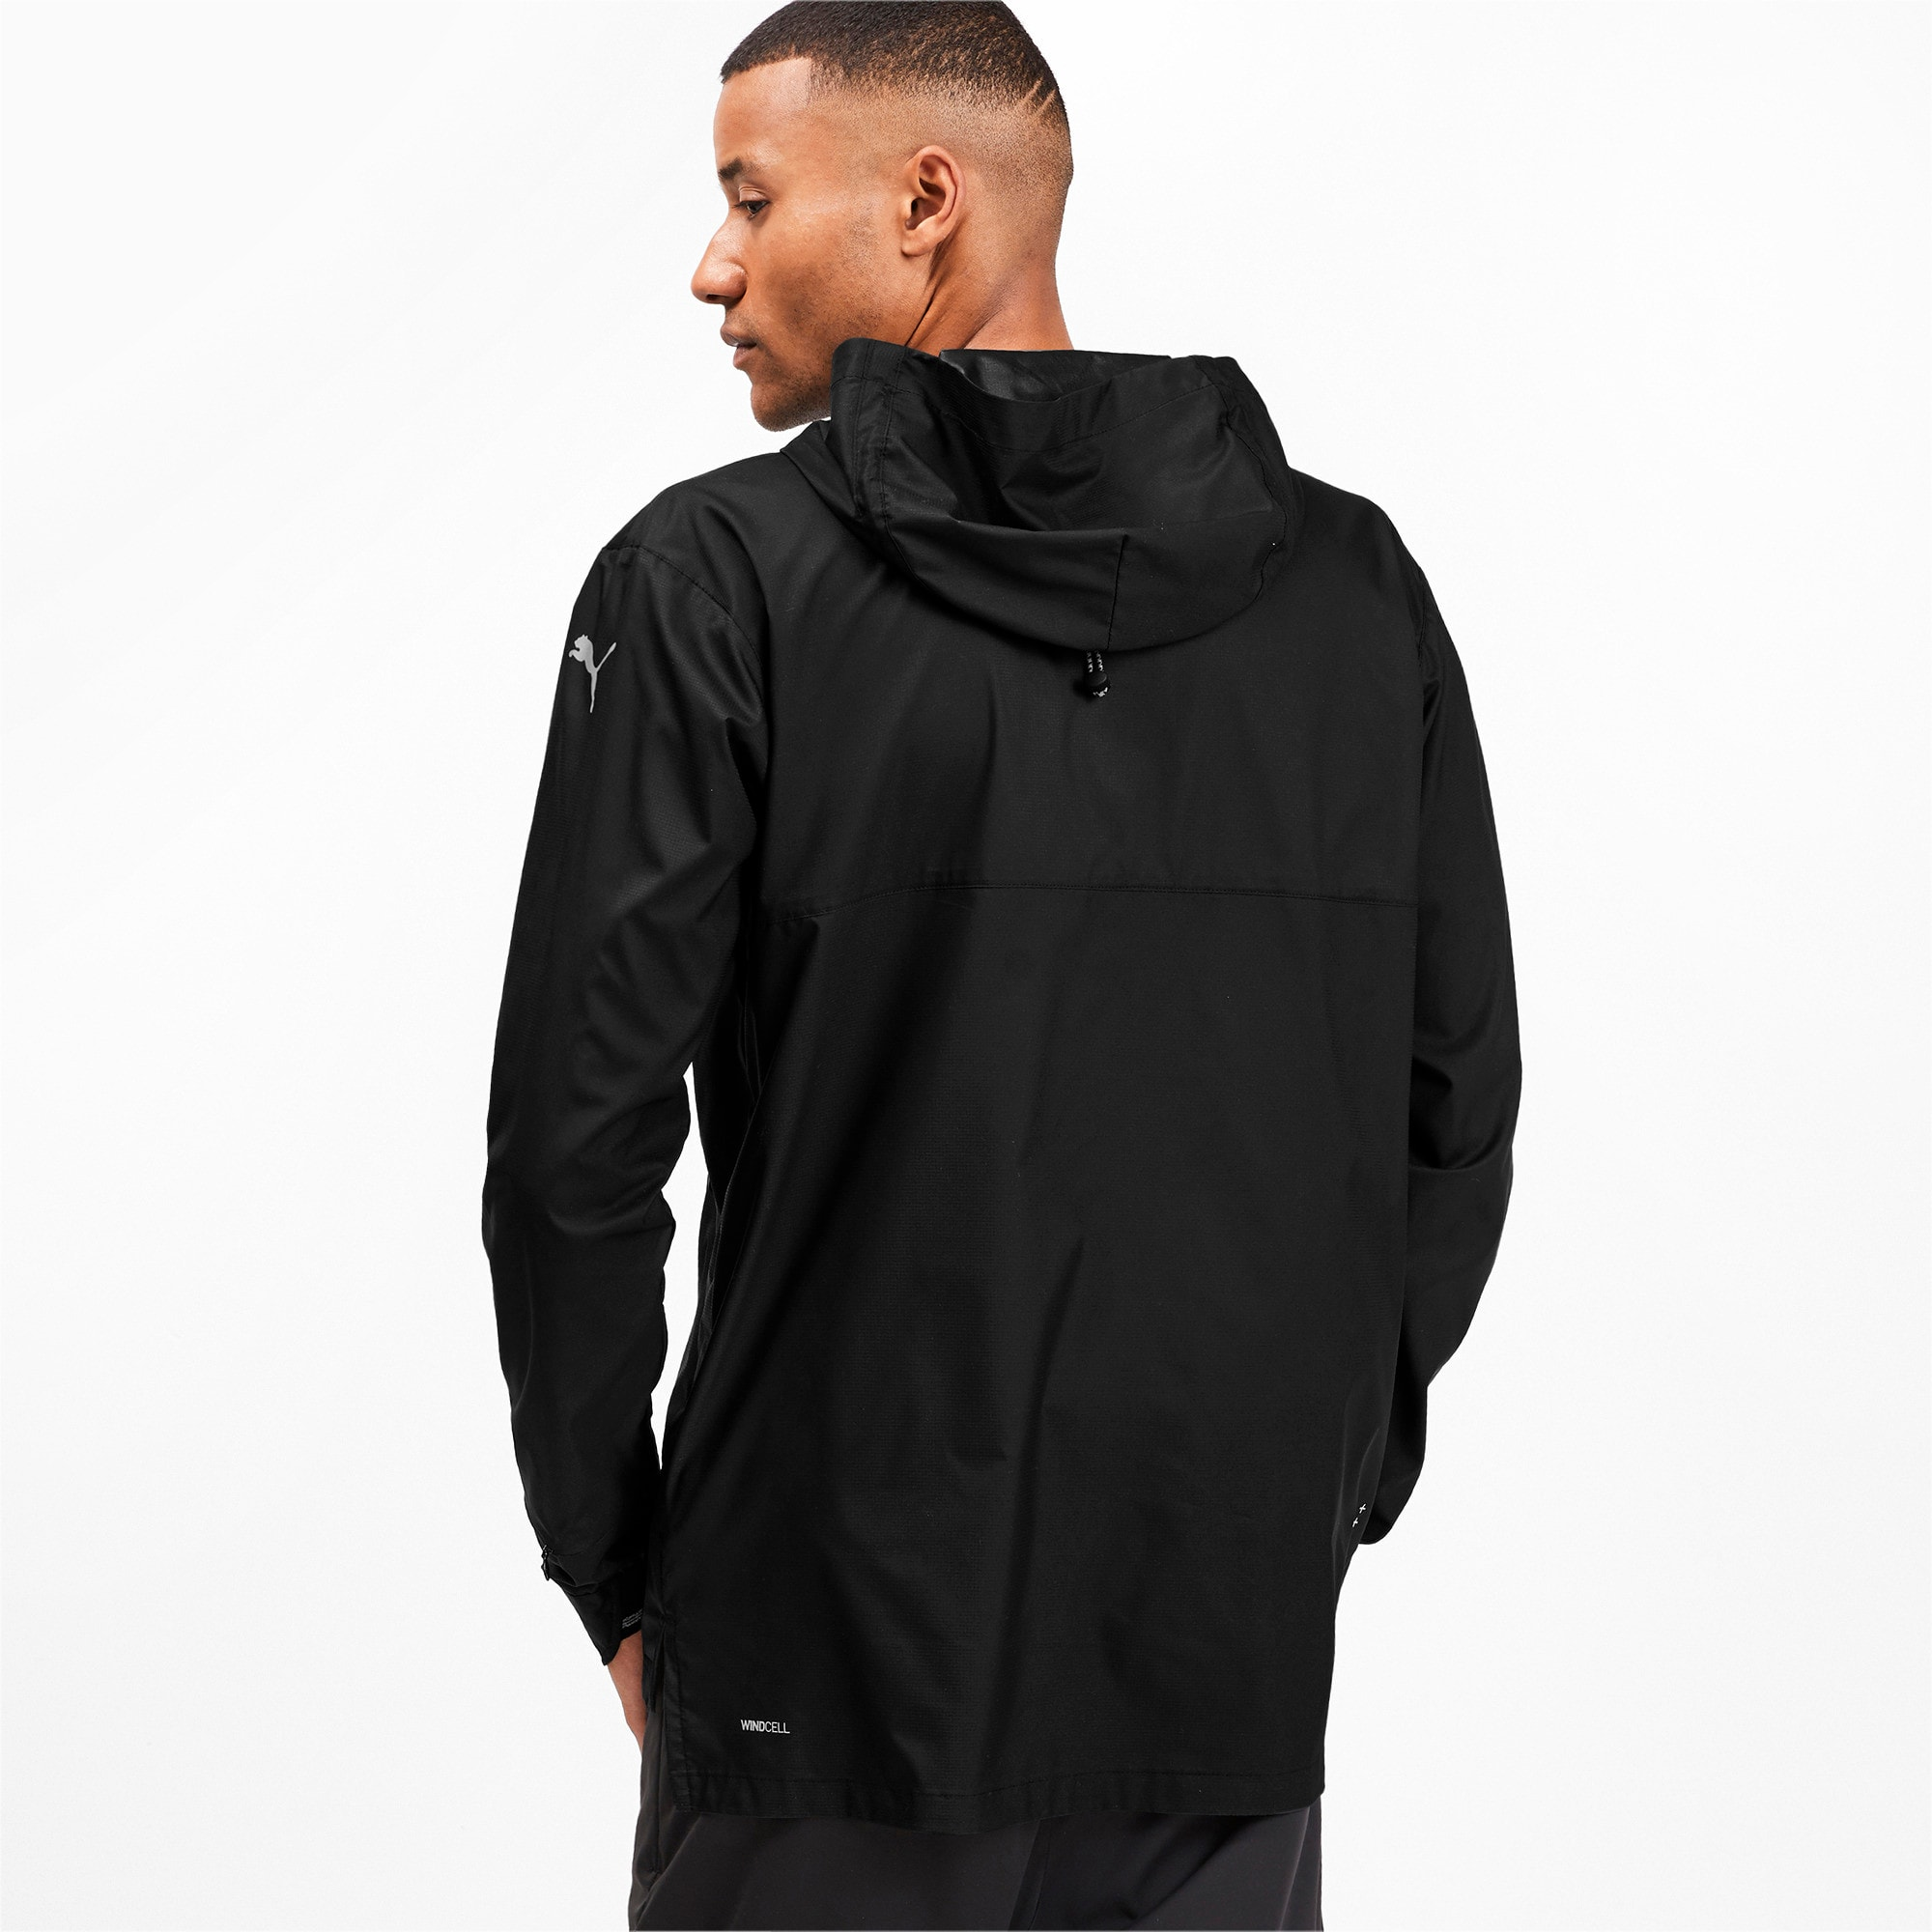 Thumbnail 2 of Last Lap VIZ Men's Running Jacket, Puma Black, medium